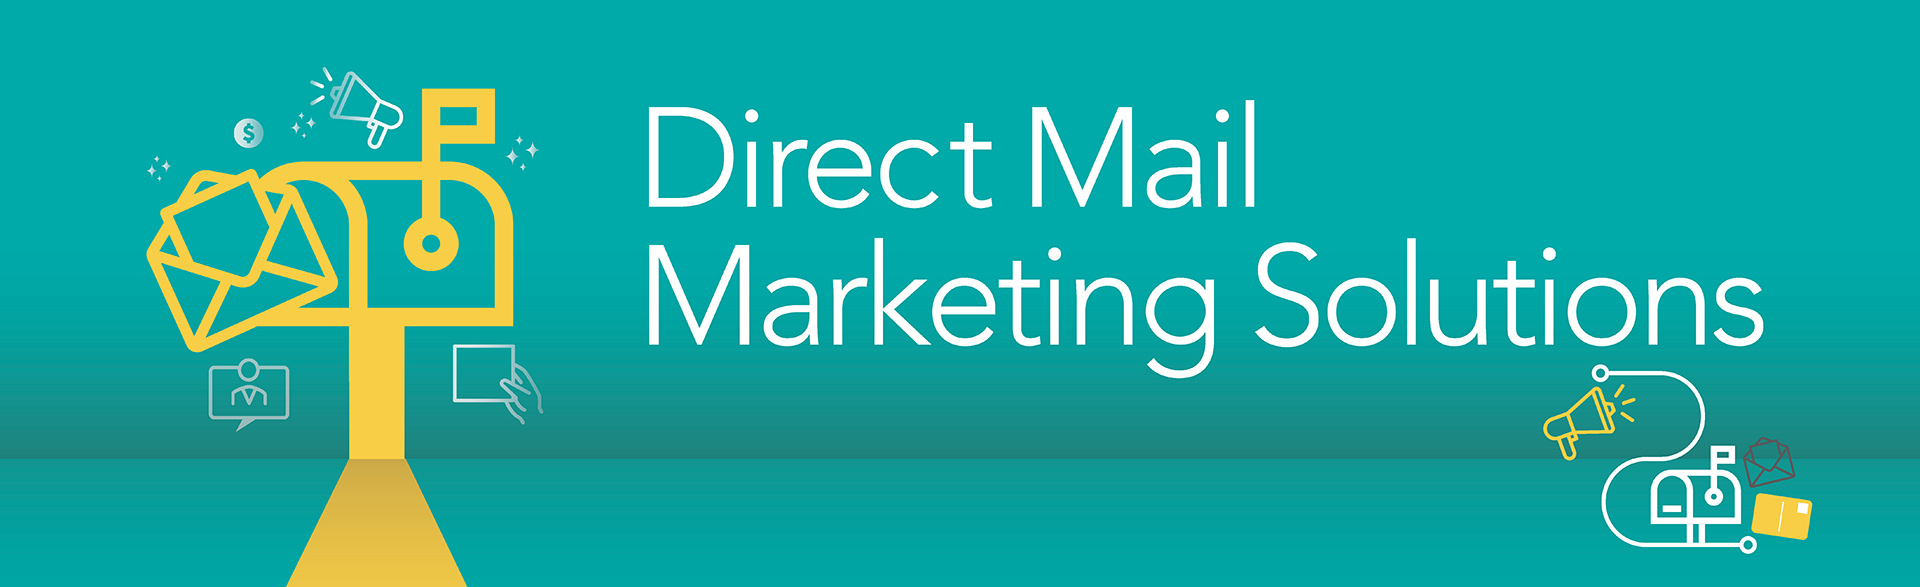 Direct Mail Marketing Solutions